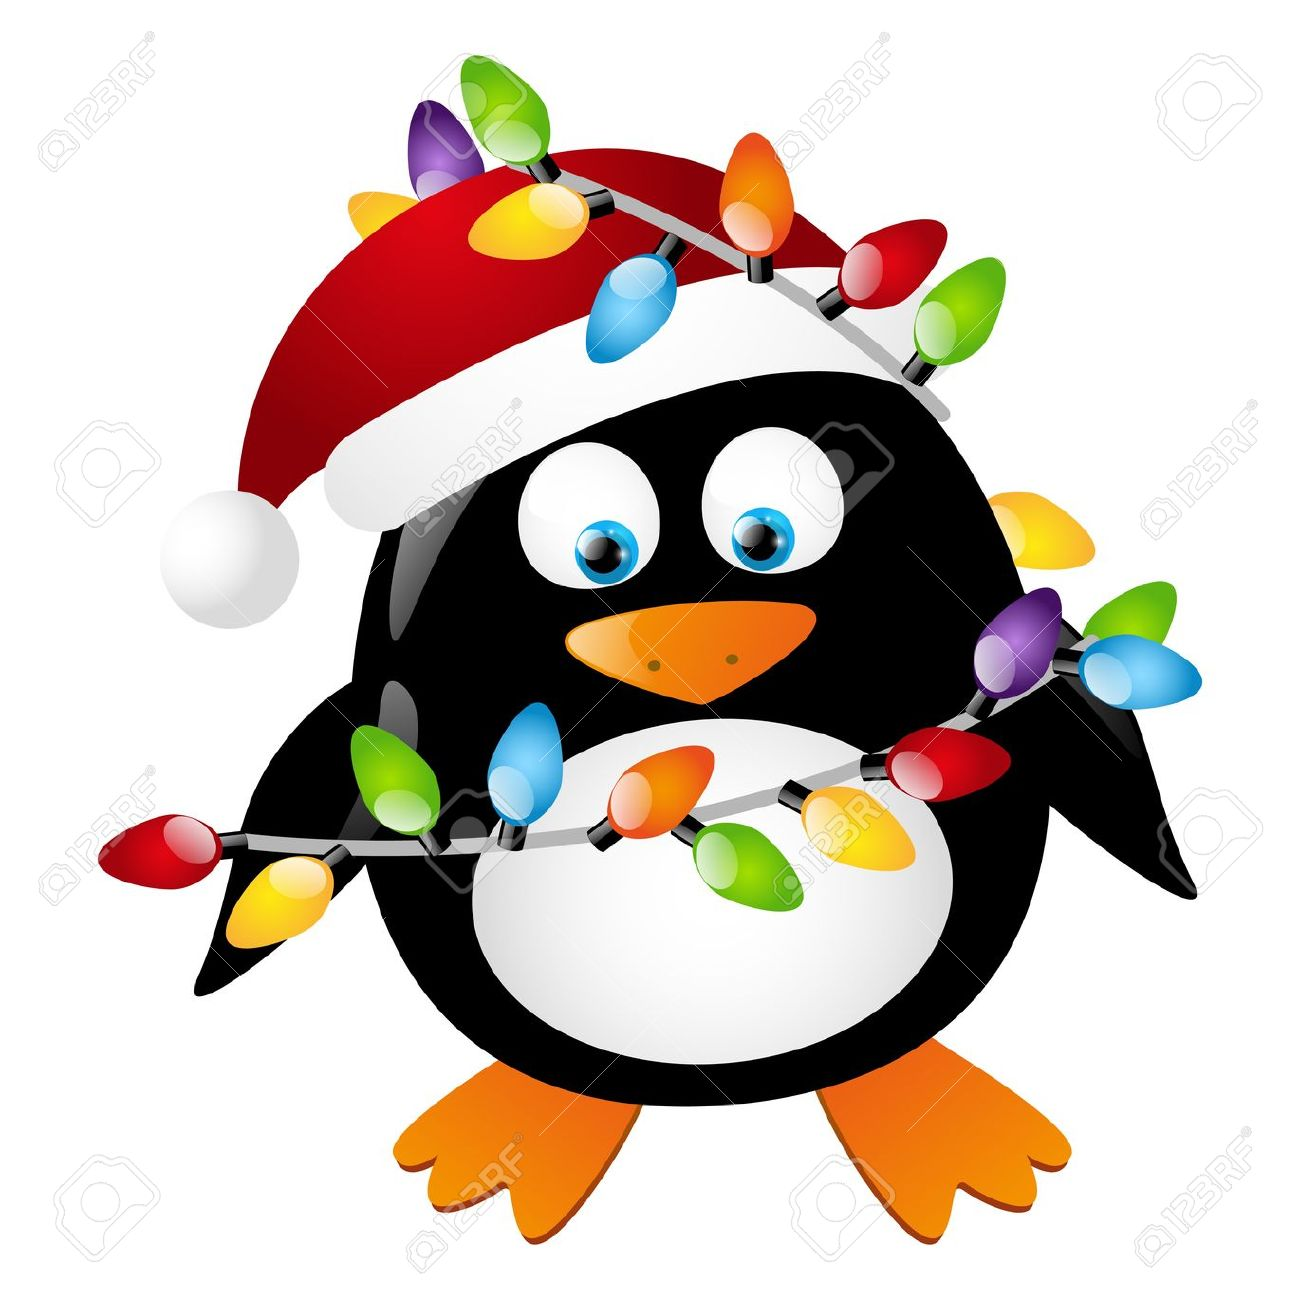 Penguin holiday clipart clipart library library 29+ Christmas Penguin Clipart | ClipartLook clipart library library